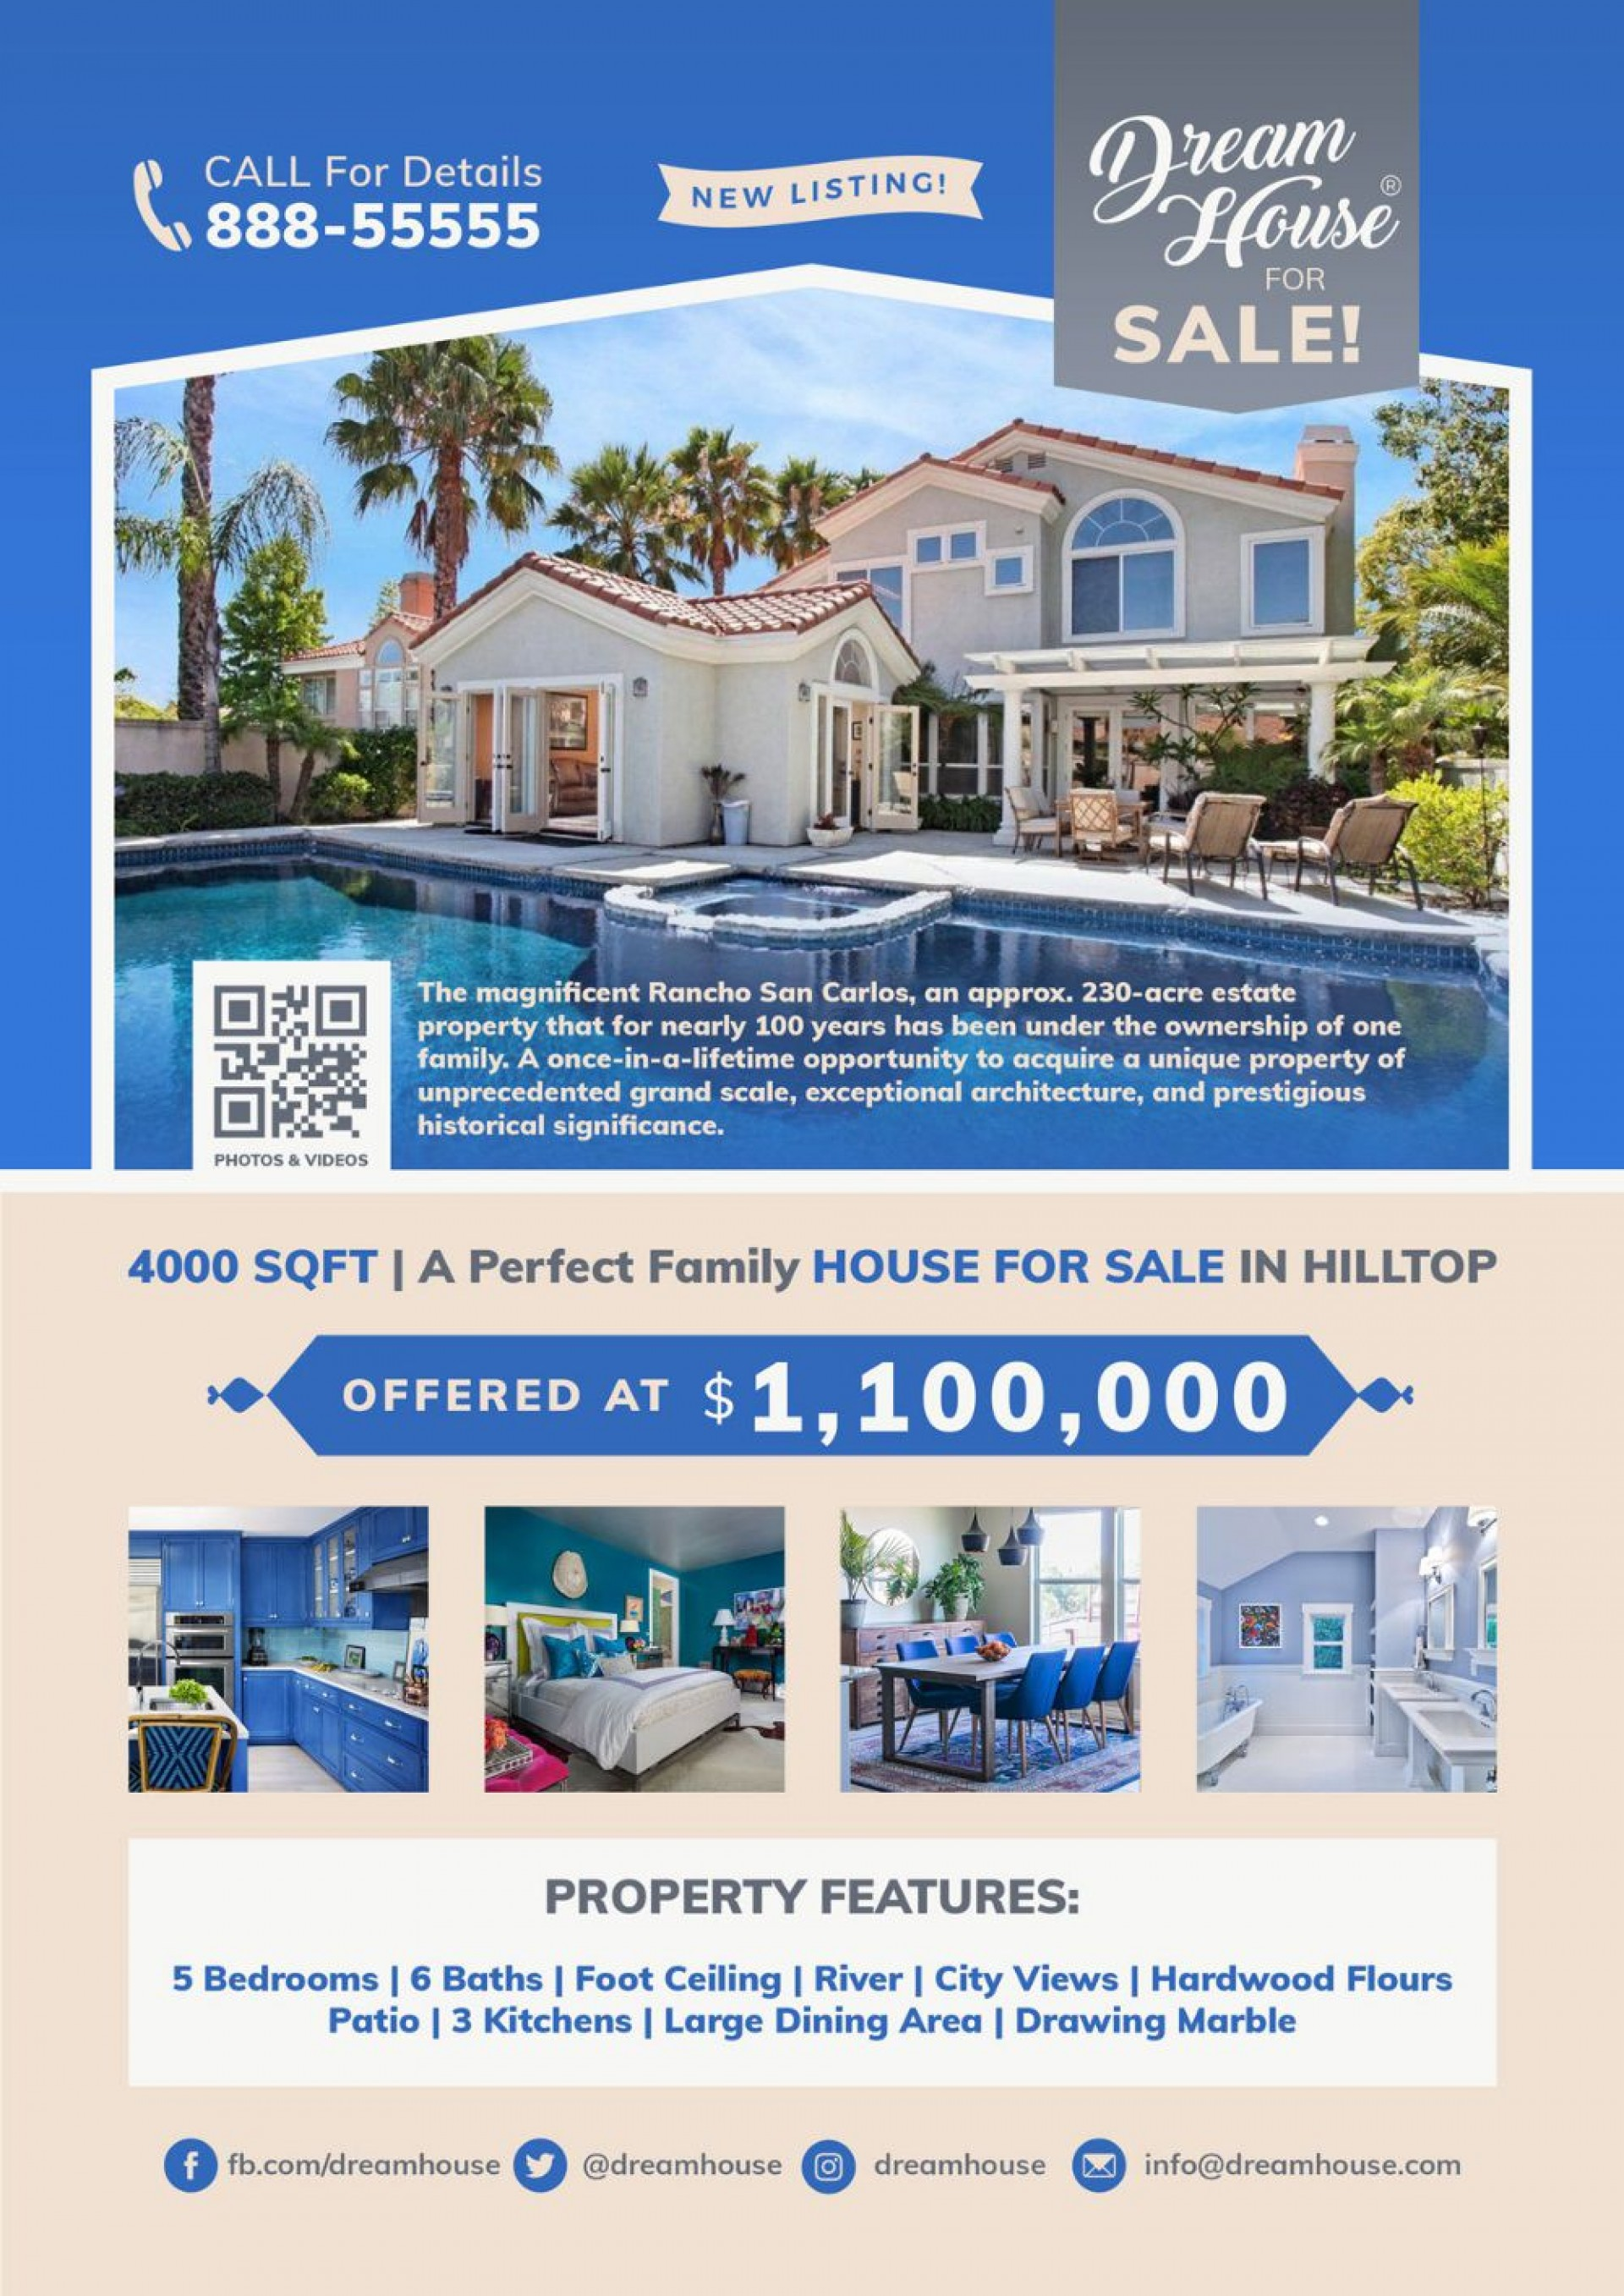 002 Best For Sale Flyer Template Example  Car Ad Microsoft Word House1920